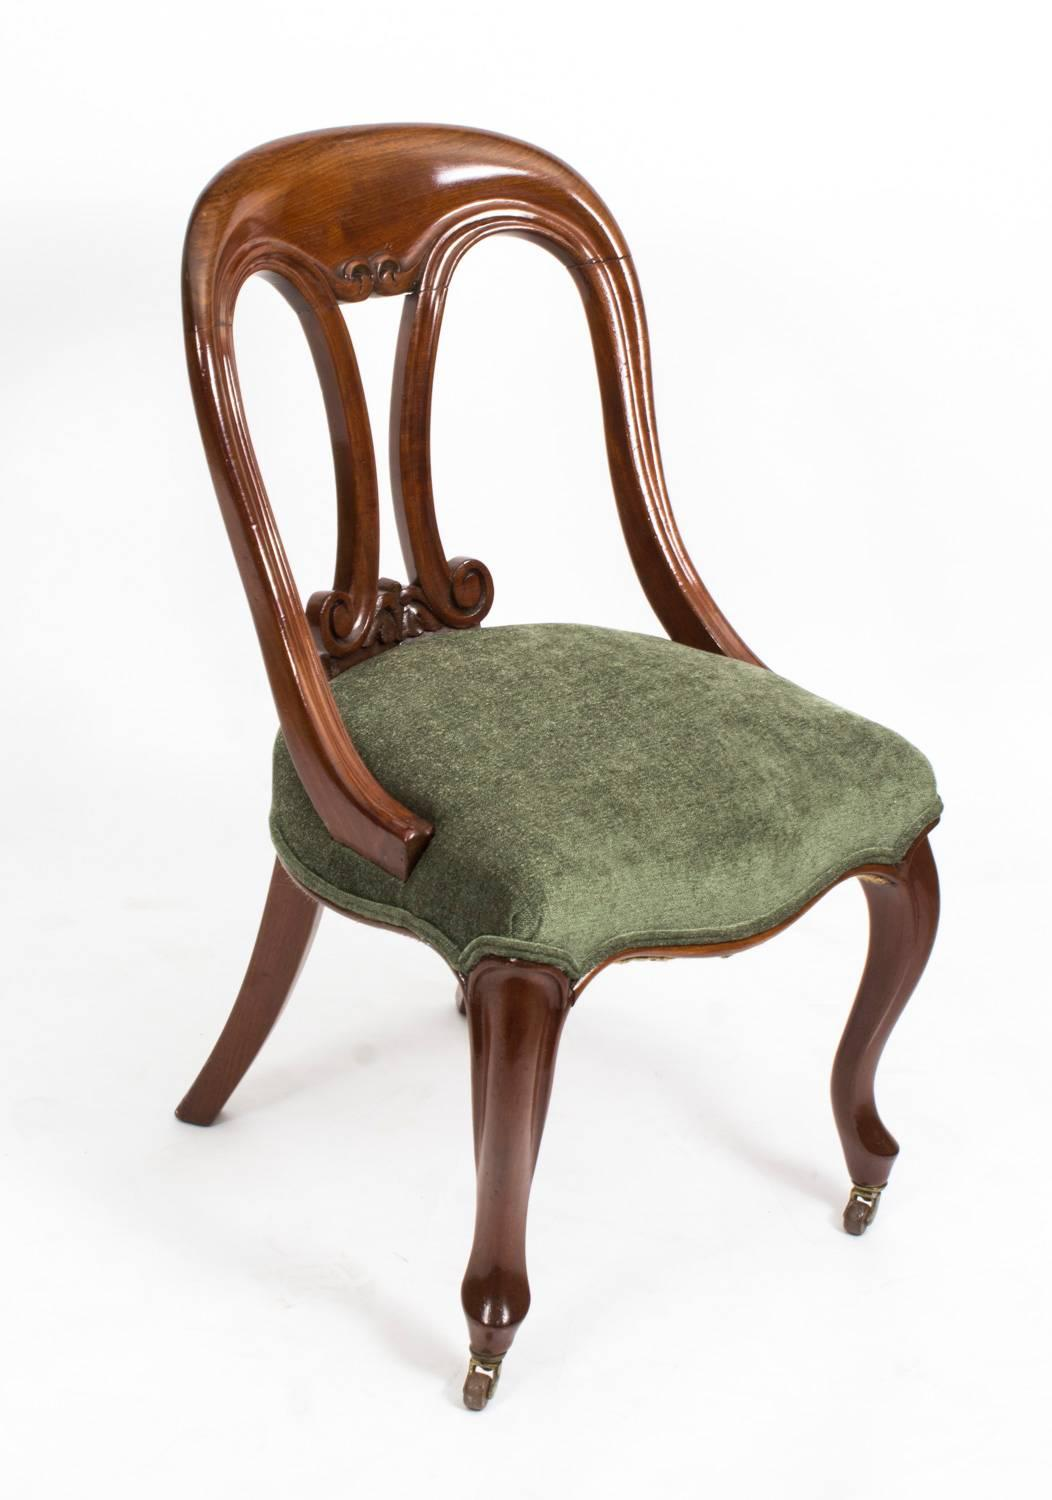 Merveilleux 19th Century Pair Of Victorian Mahogany Fiddle Back Side Chairs At 1stdibs